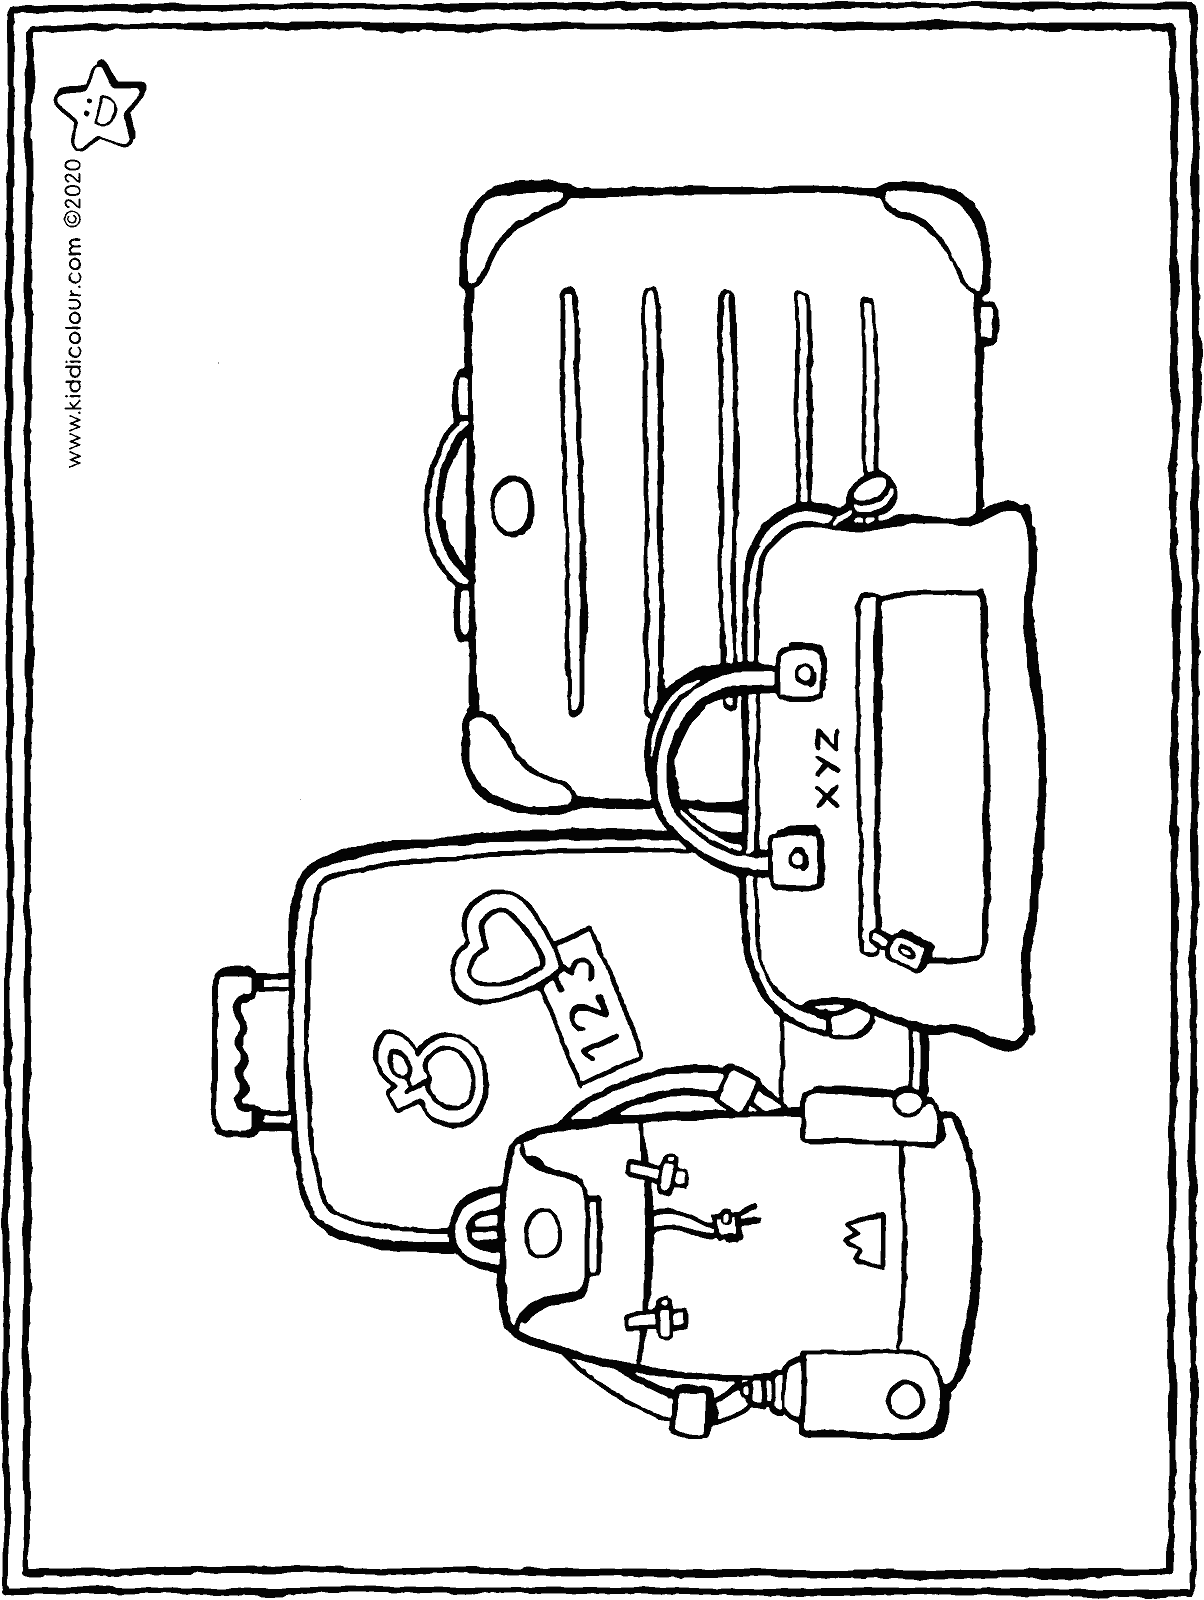 luggage colouring page drawing picture 01H